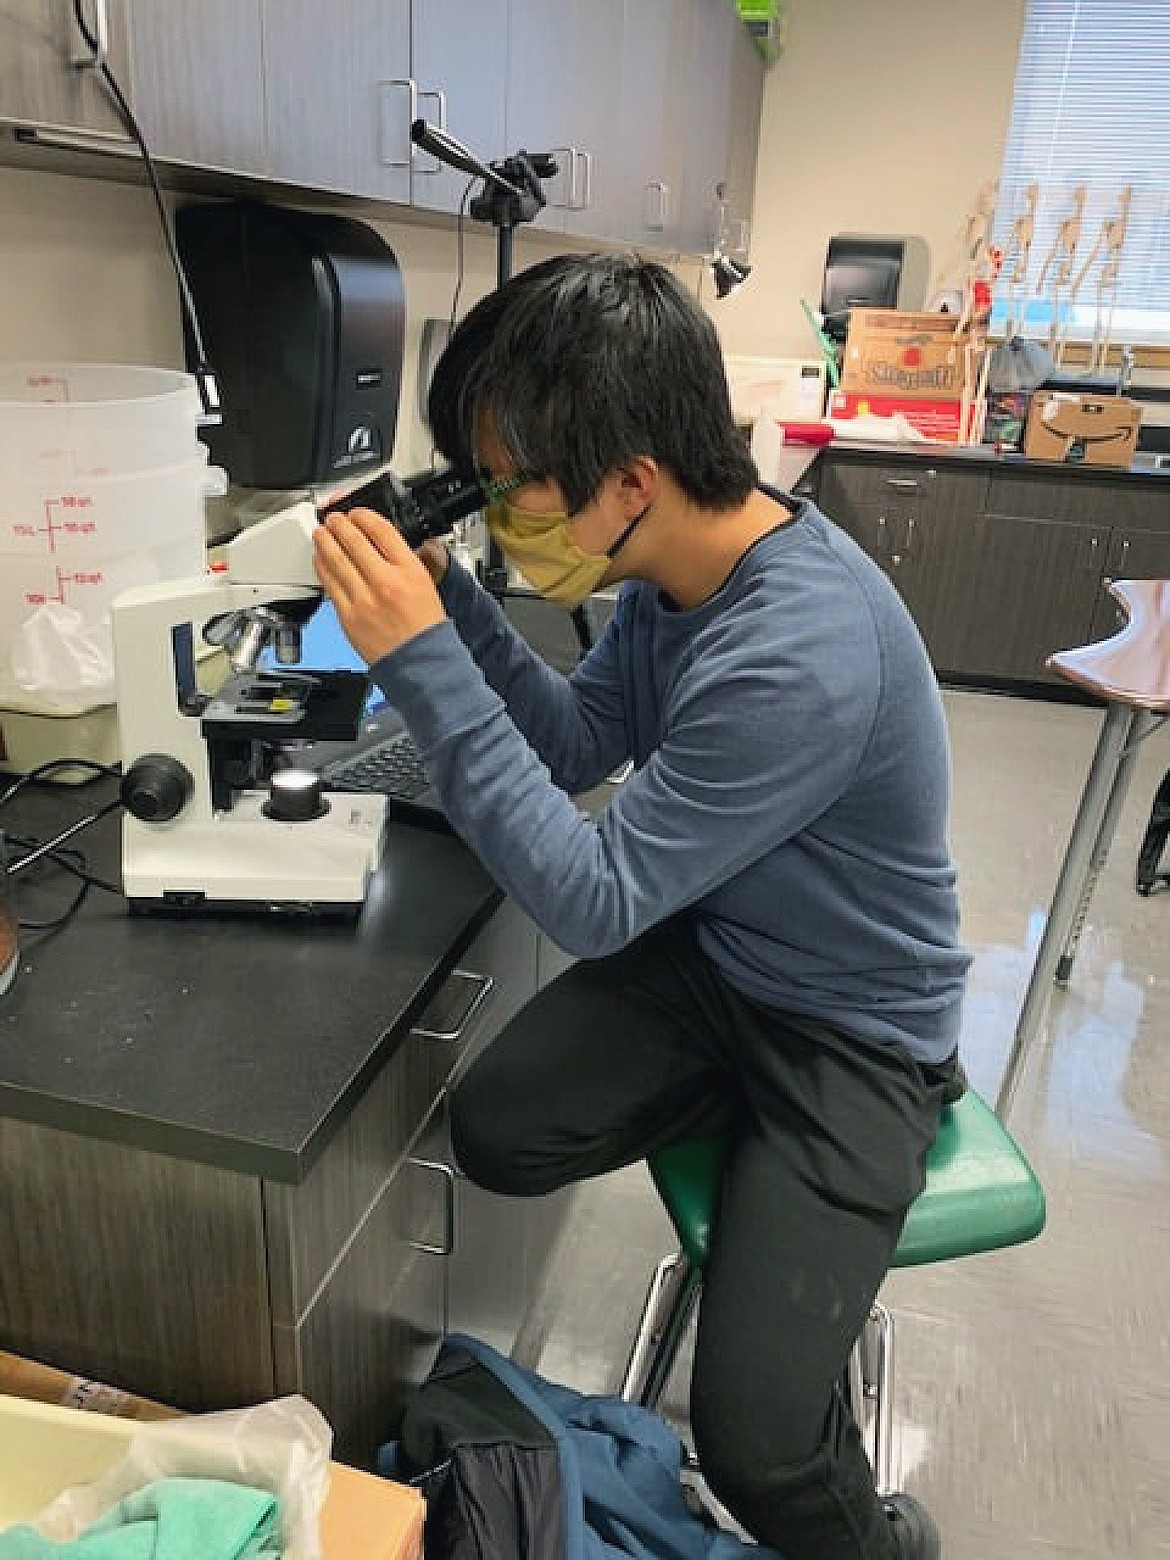 Whitefish High School sophomore Joshua Pitchford uses a microscope as he gets assistance in his biology class on a recent Wednesday. (Photo courtesy of Whitefish School District)